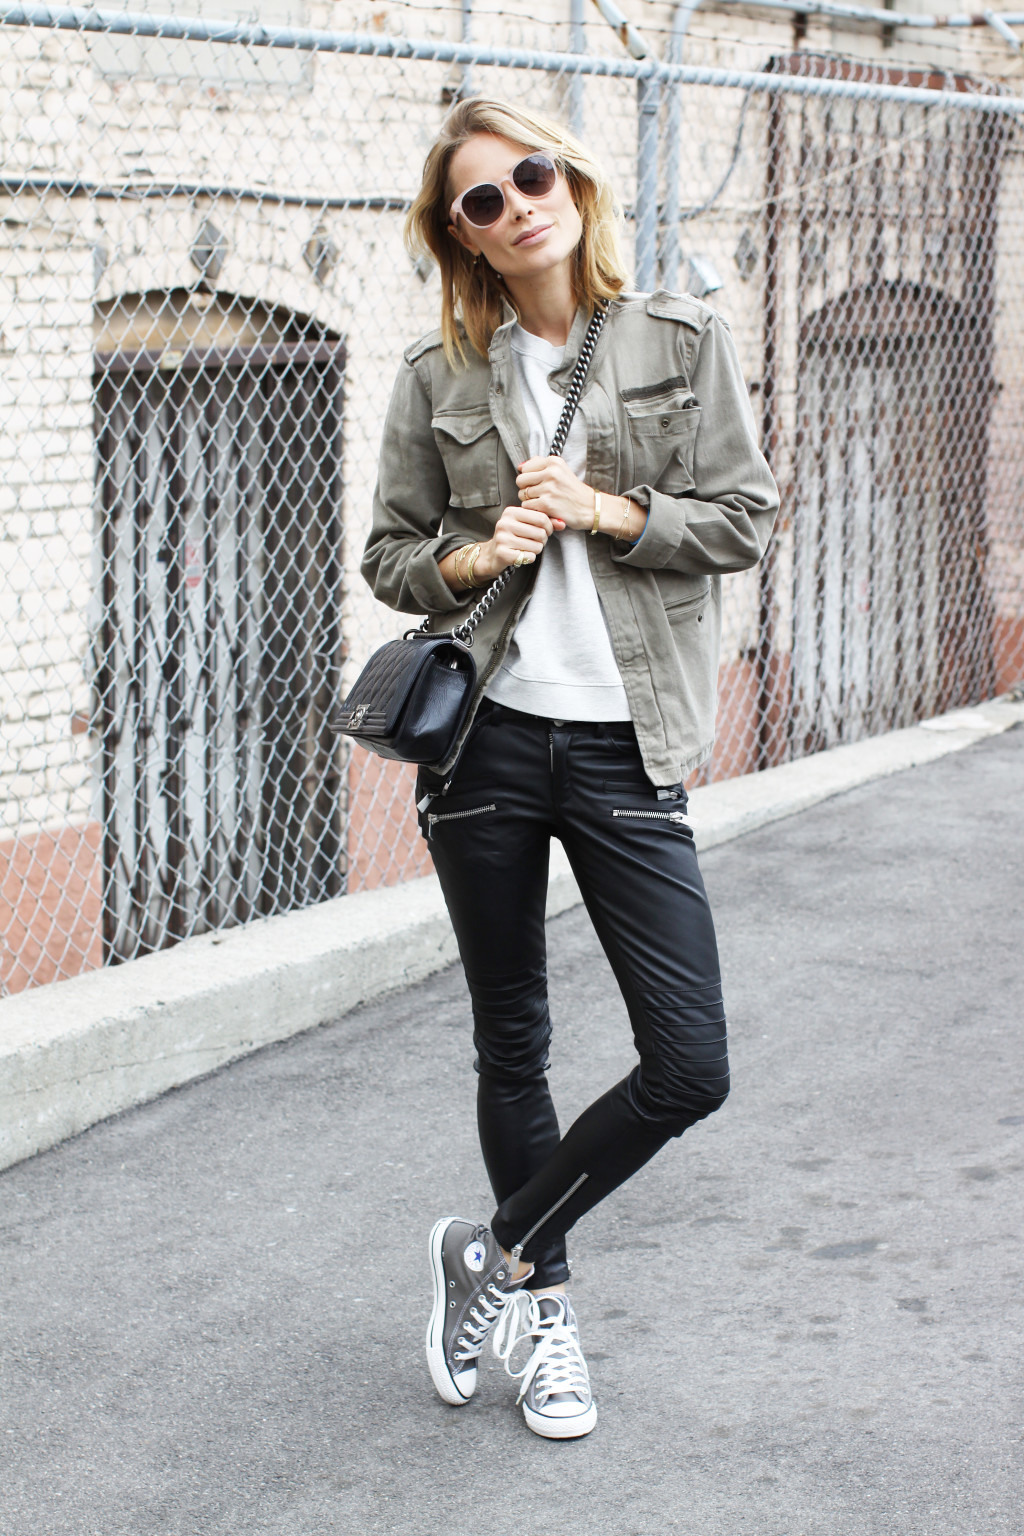 Anine Bing is wearing black leather trousers, military style army jacket, bag from Chanel, top from Sincere Jules and the shoes are from Converse